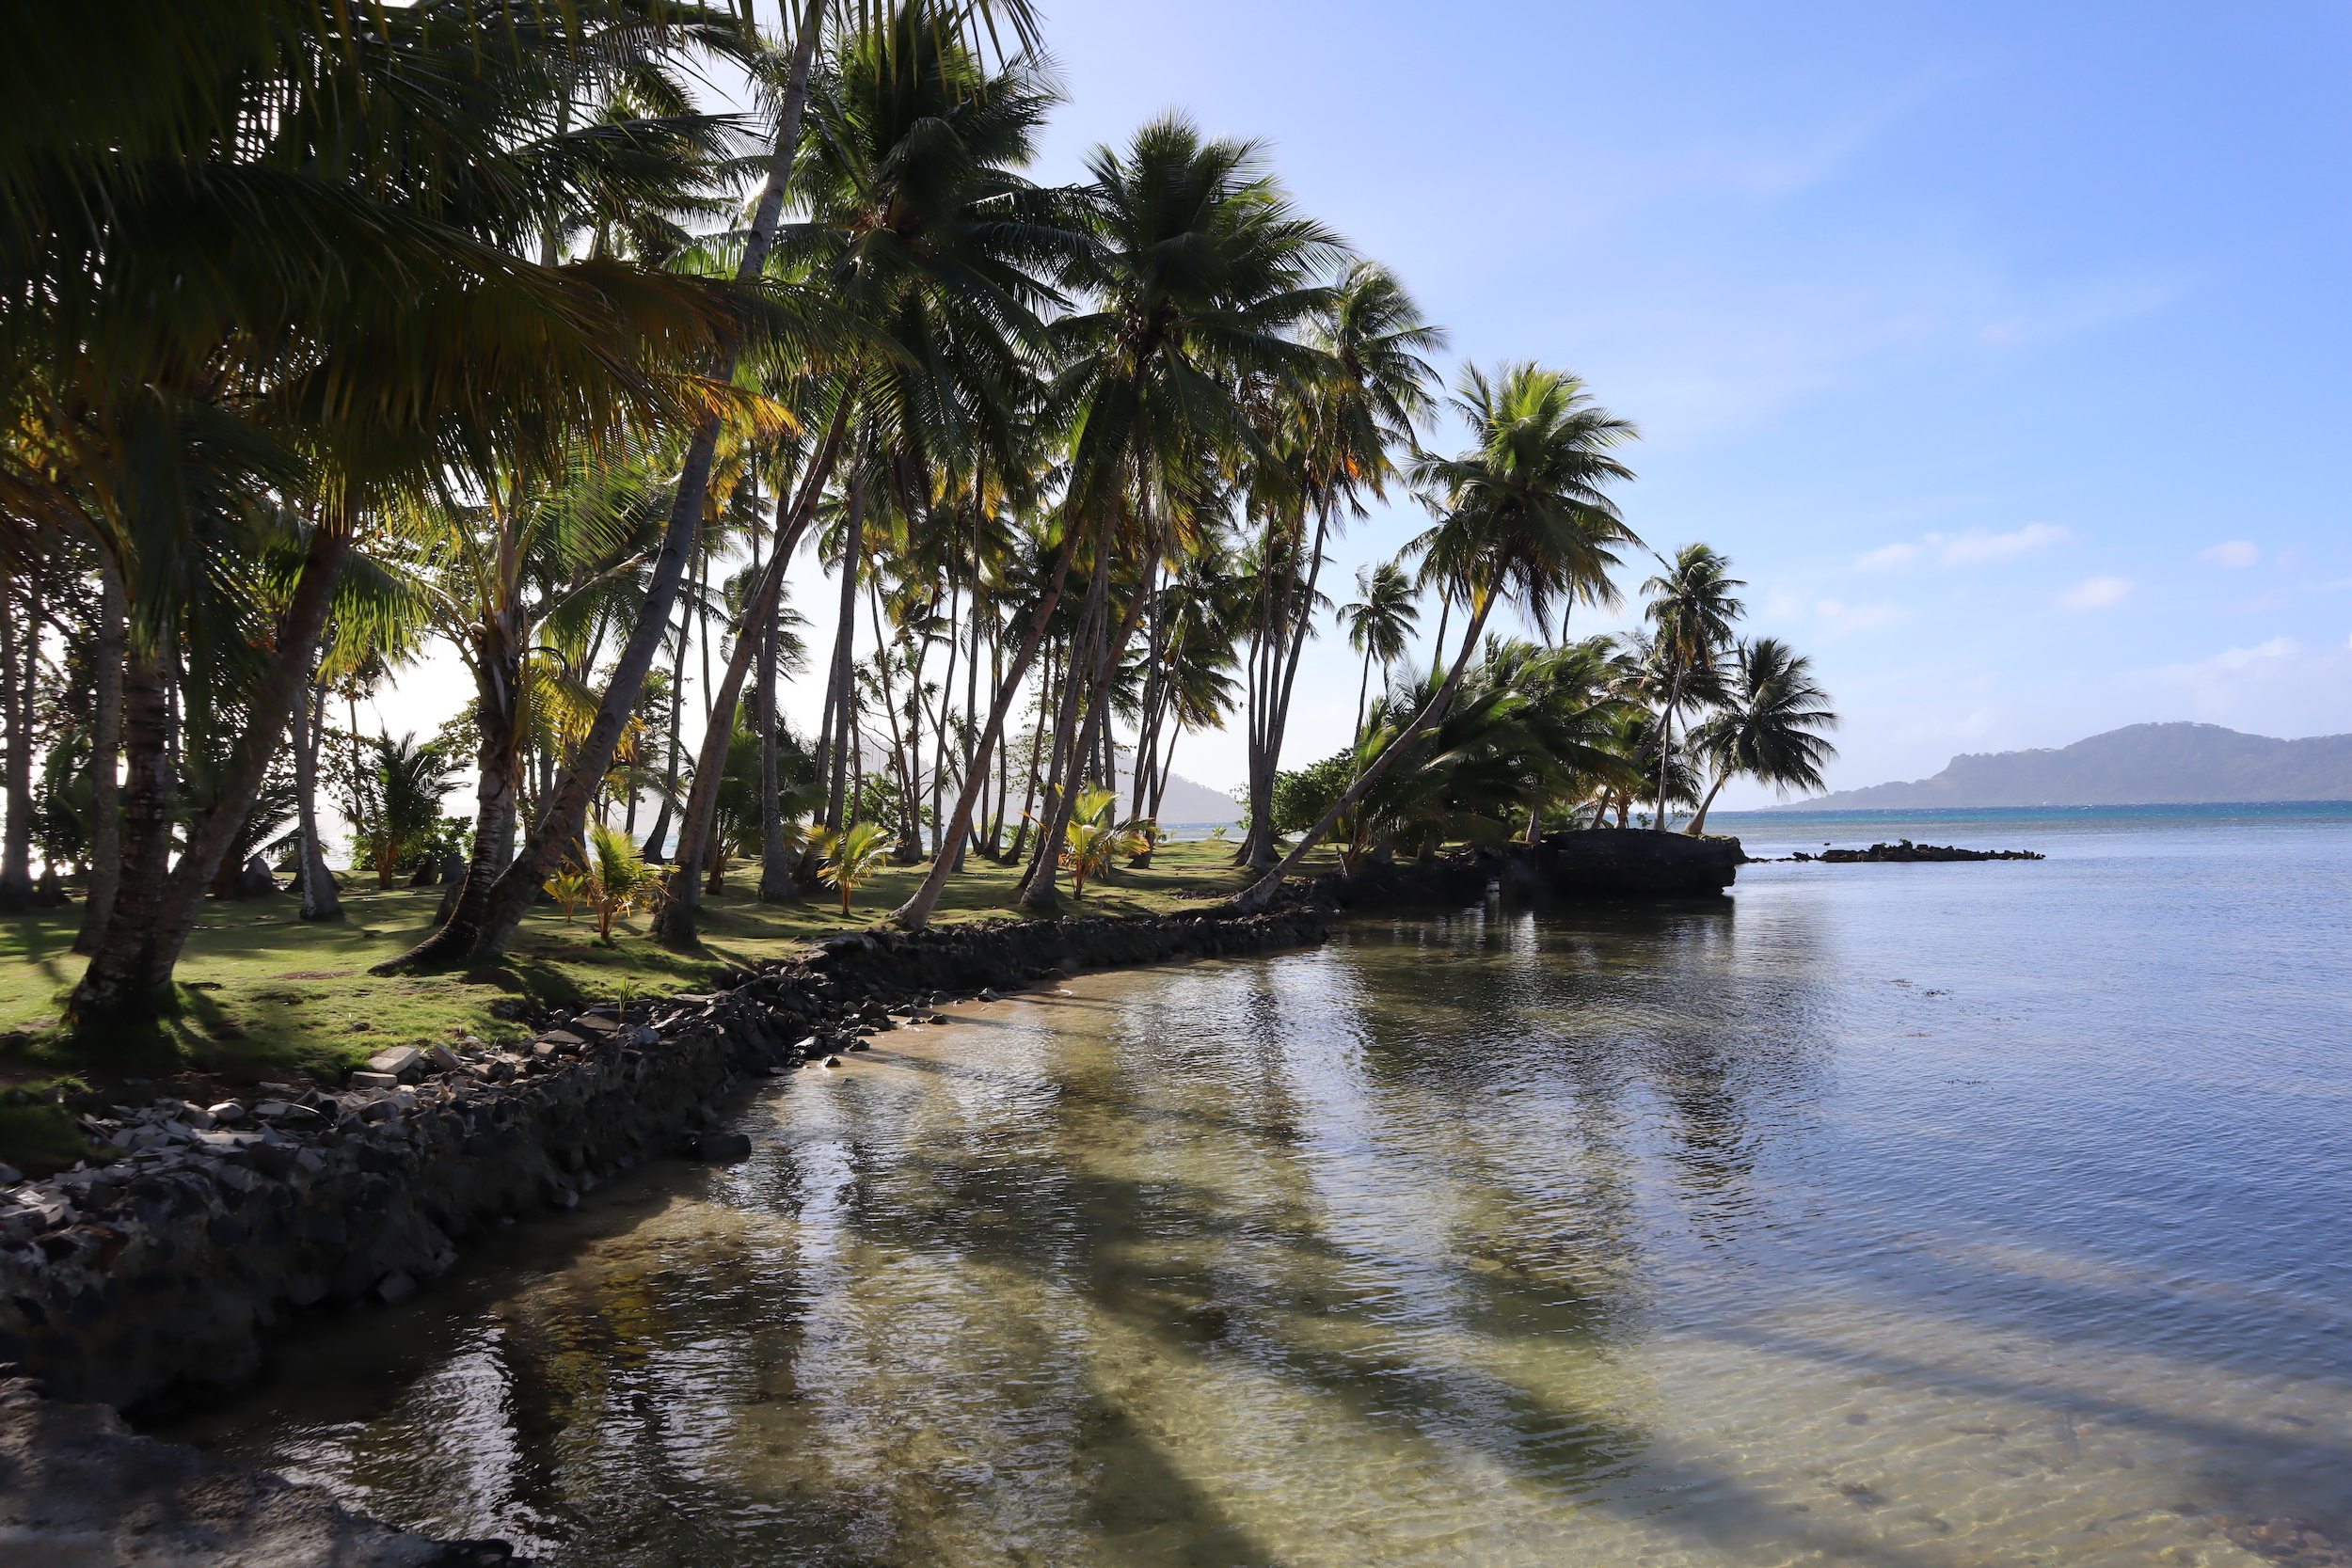 Blue Lagoon Dive Resort – By the water